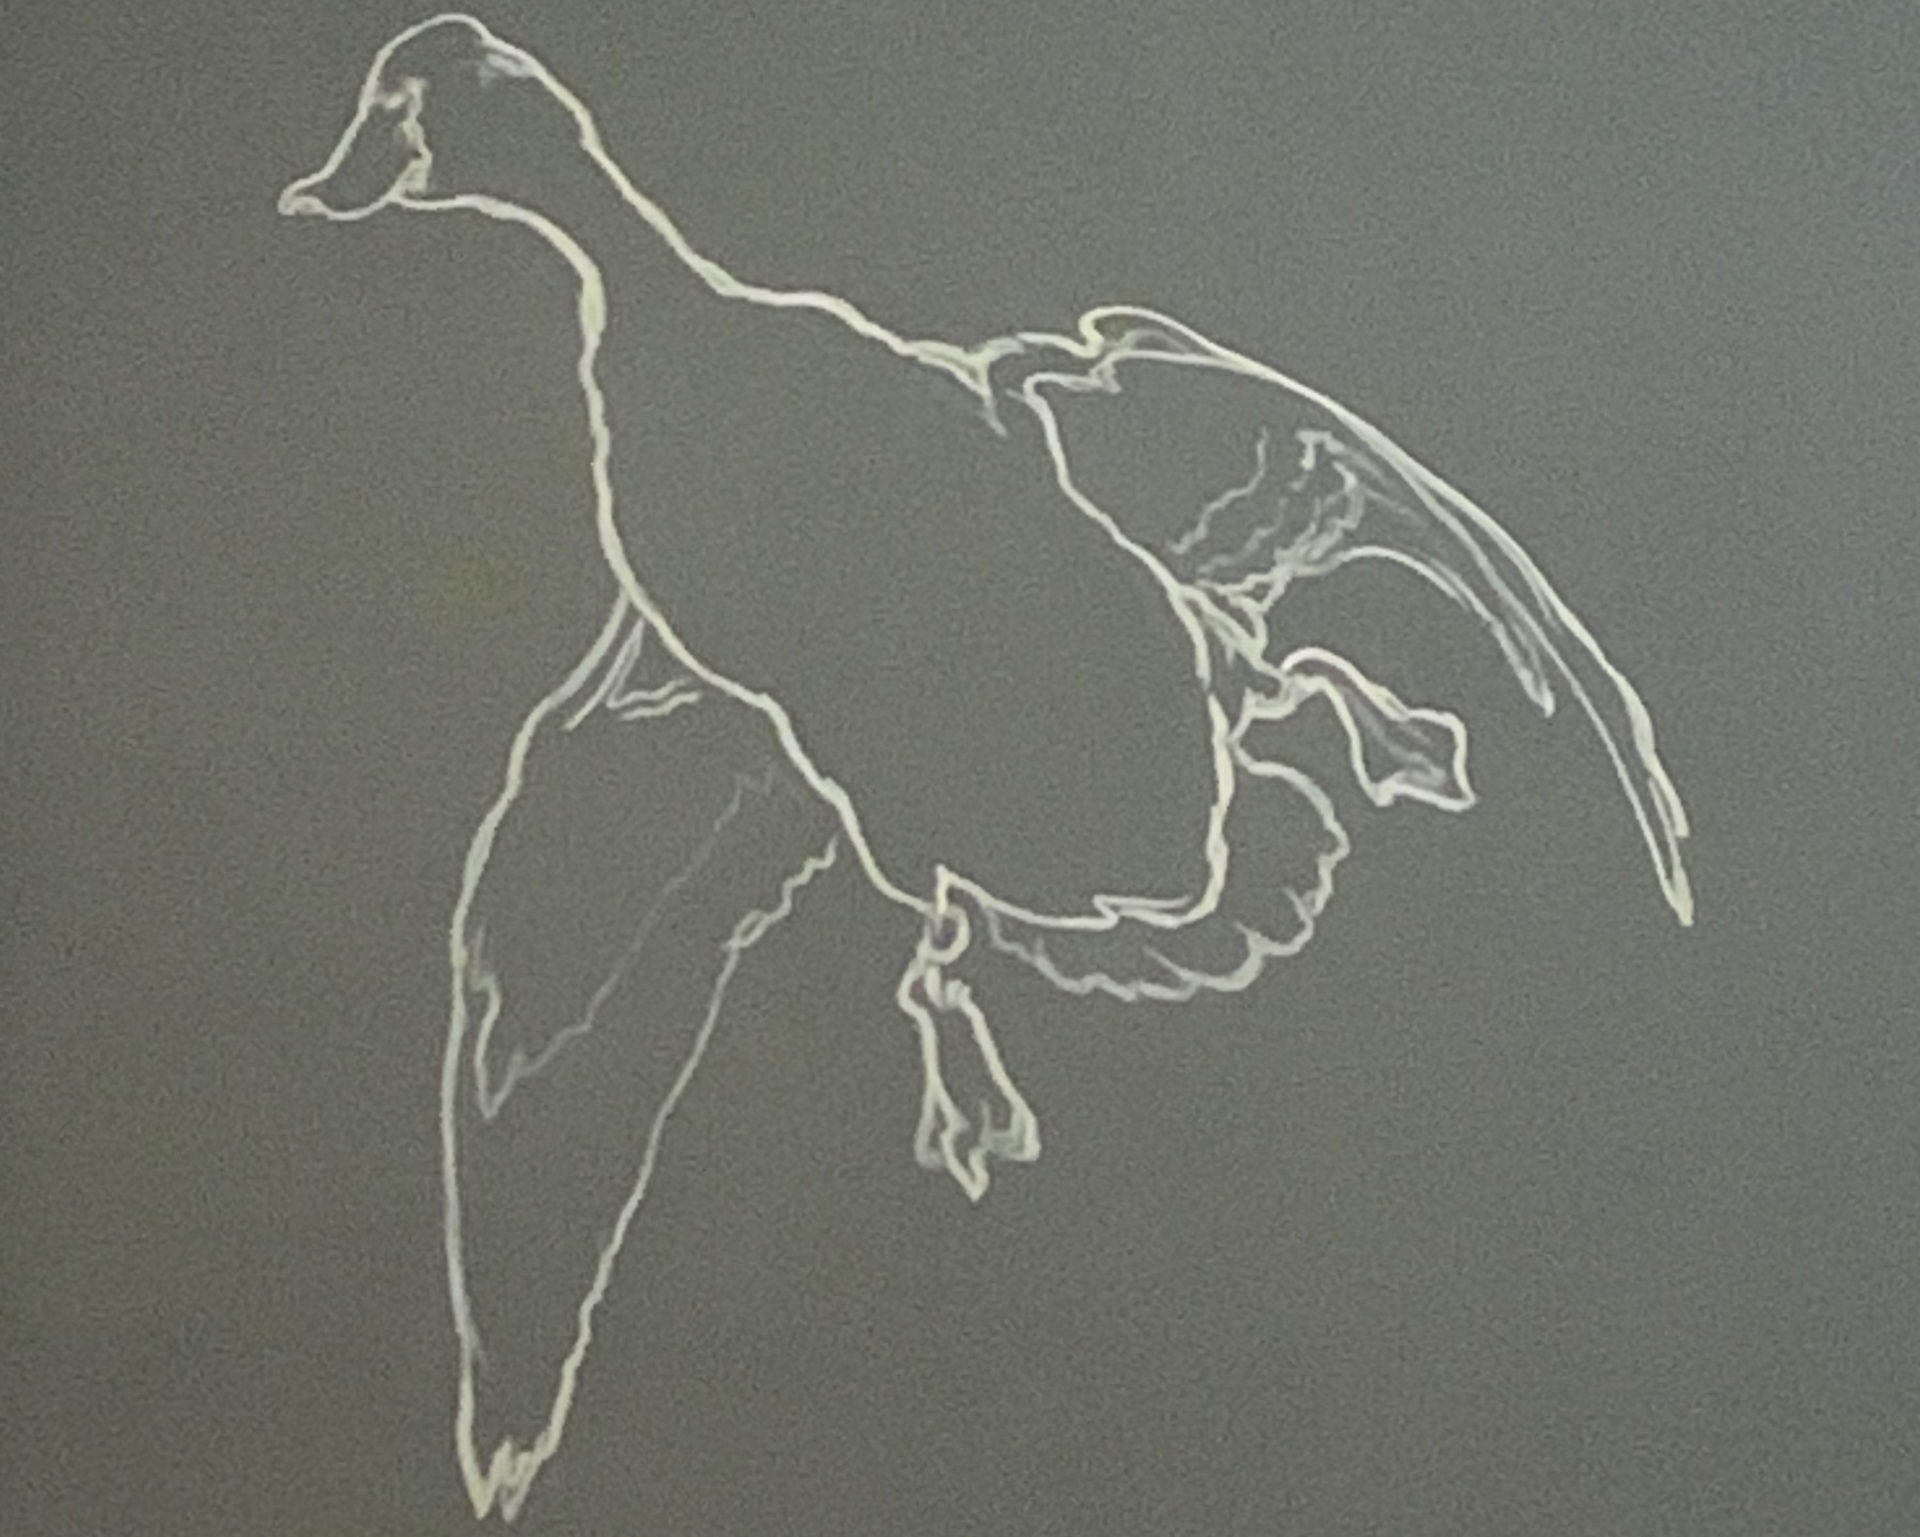 artistic rendering of black duck in flight in the style of field notes on the bell museum wall